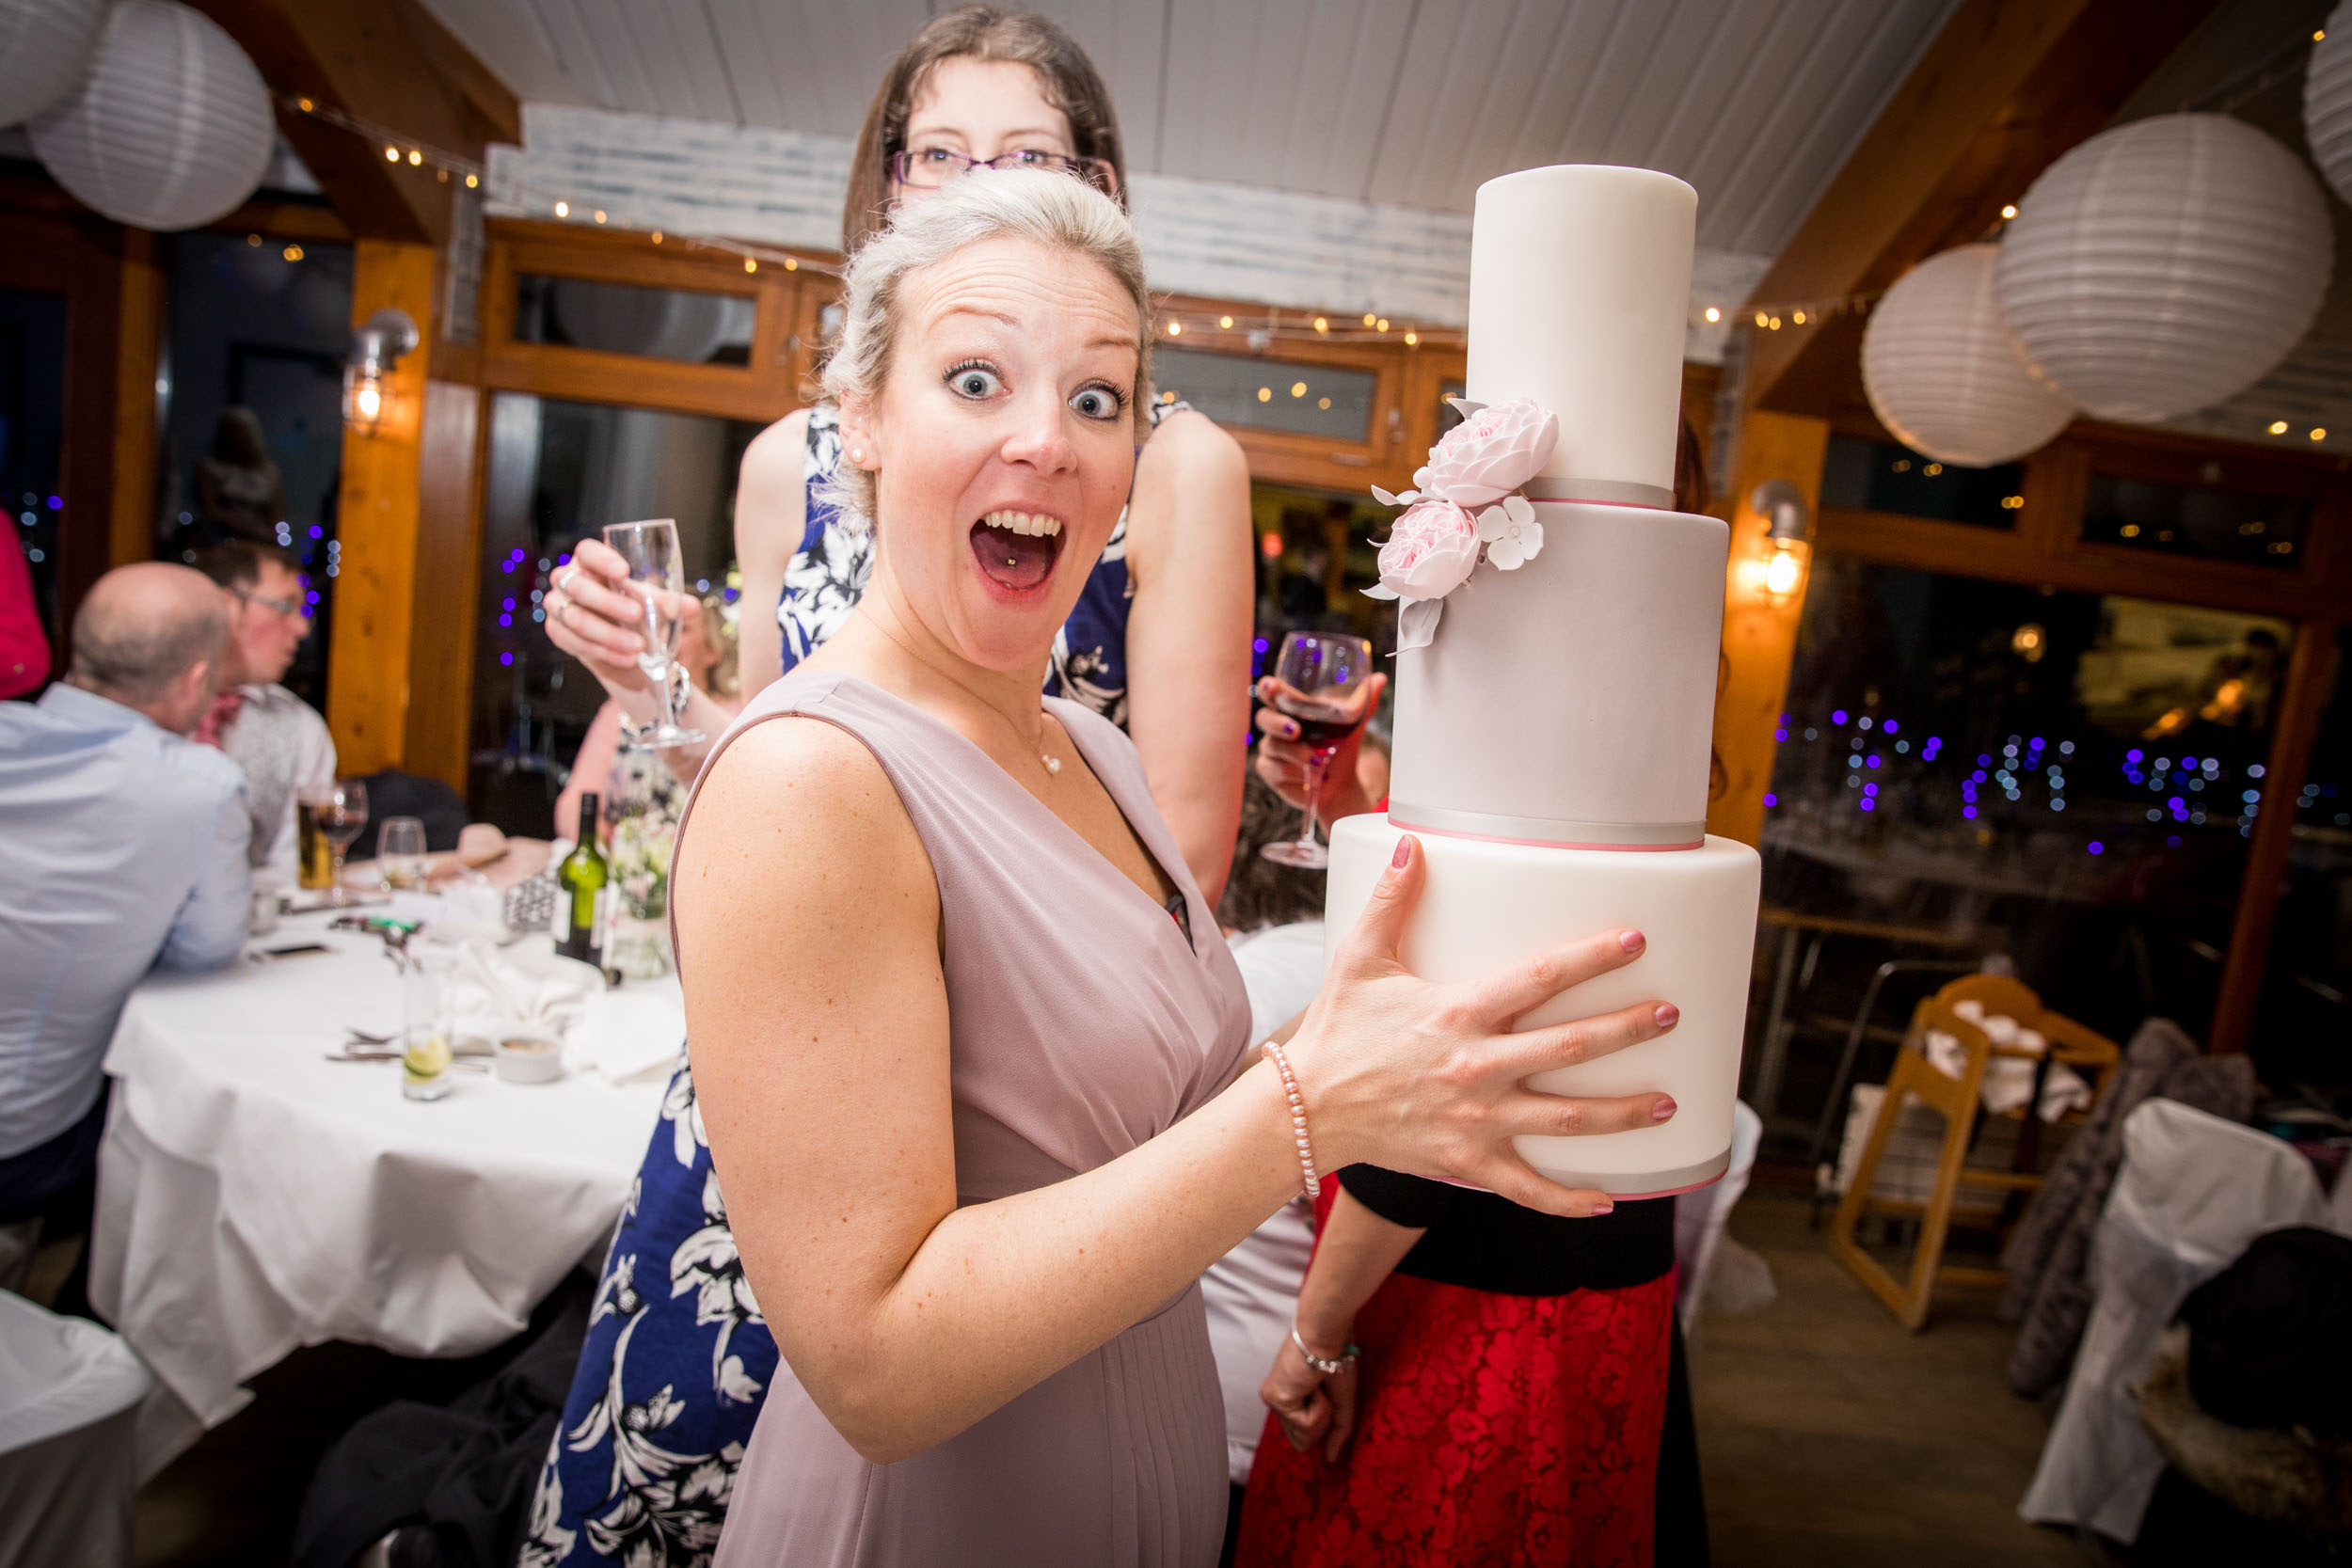 """""""… you're f**king awesome at what you do!"""" - - Kim & Joe - Westward Ho! Wedding""""Thank you so so much the video is worth millions!""""- Alice & Rob - Beaconside House Wedding"""